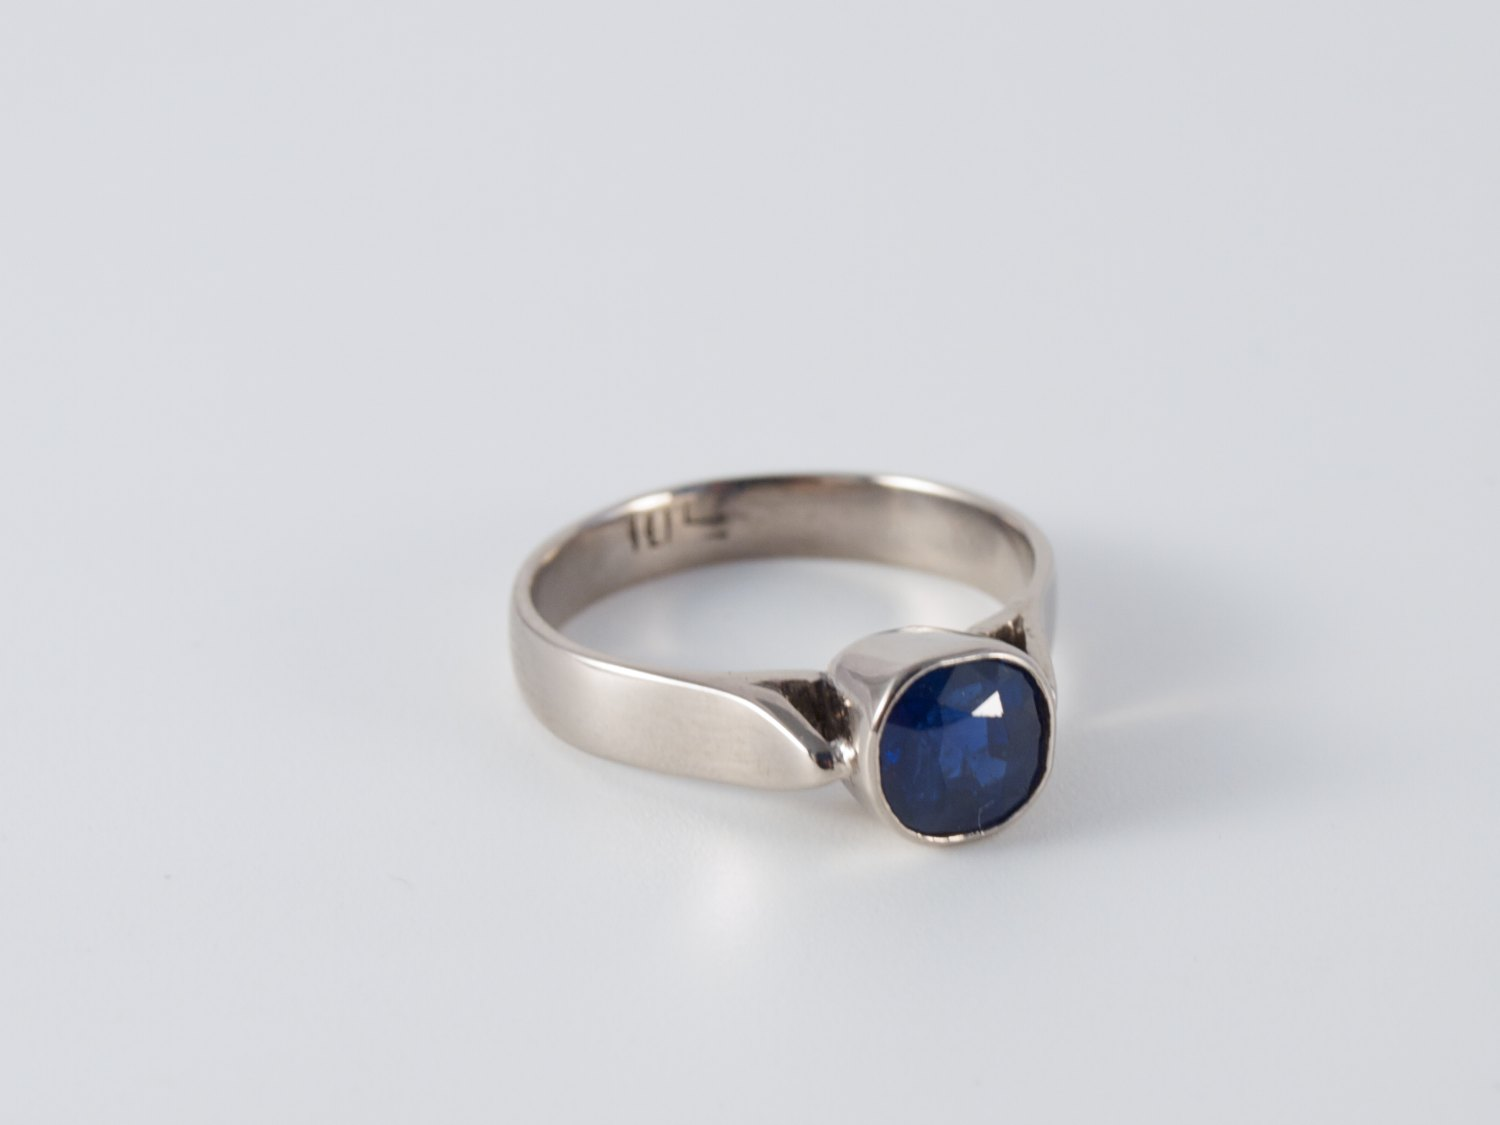 Jewellery commission to make 18 kt white gold ring with solitair sapphire.